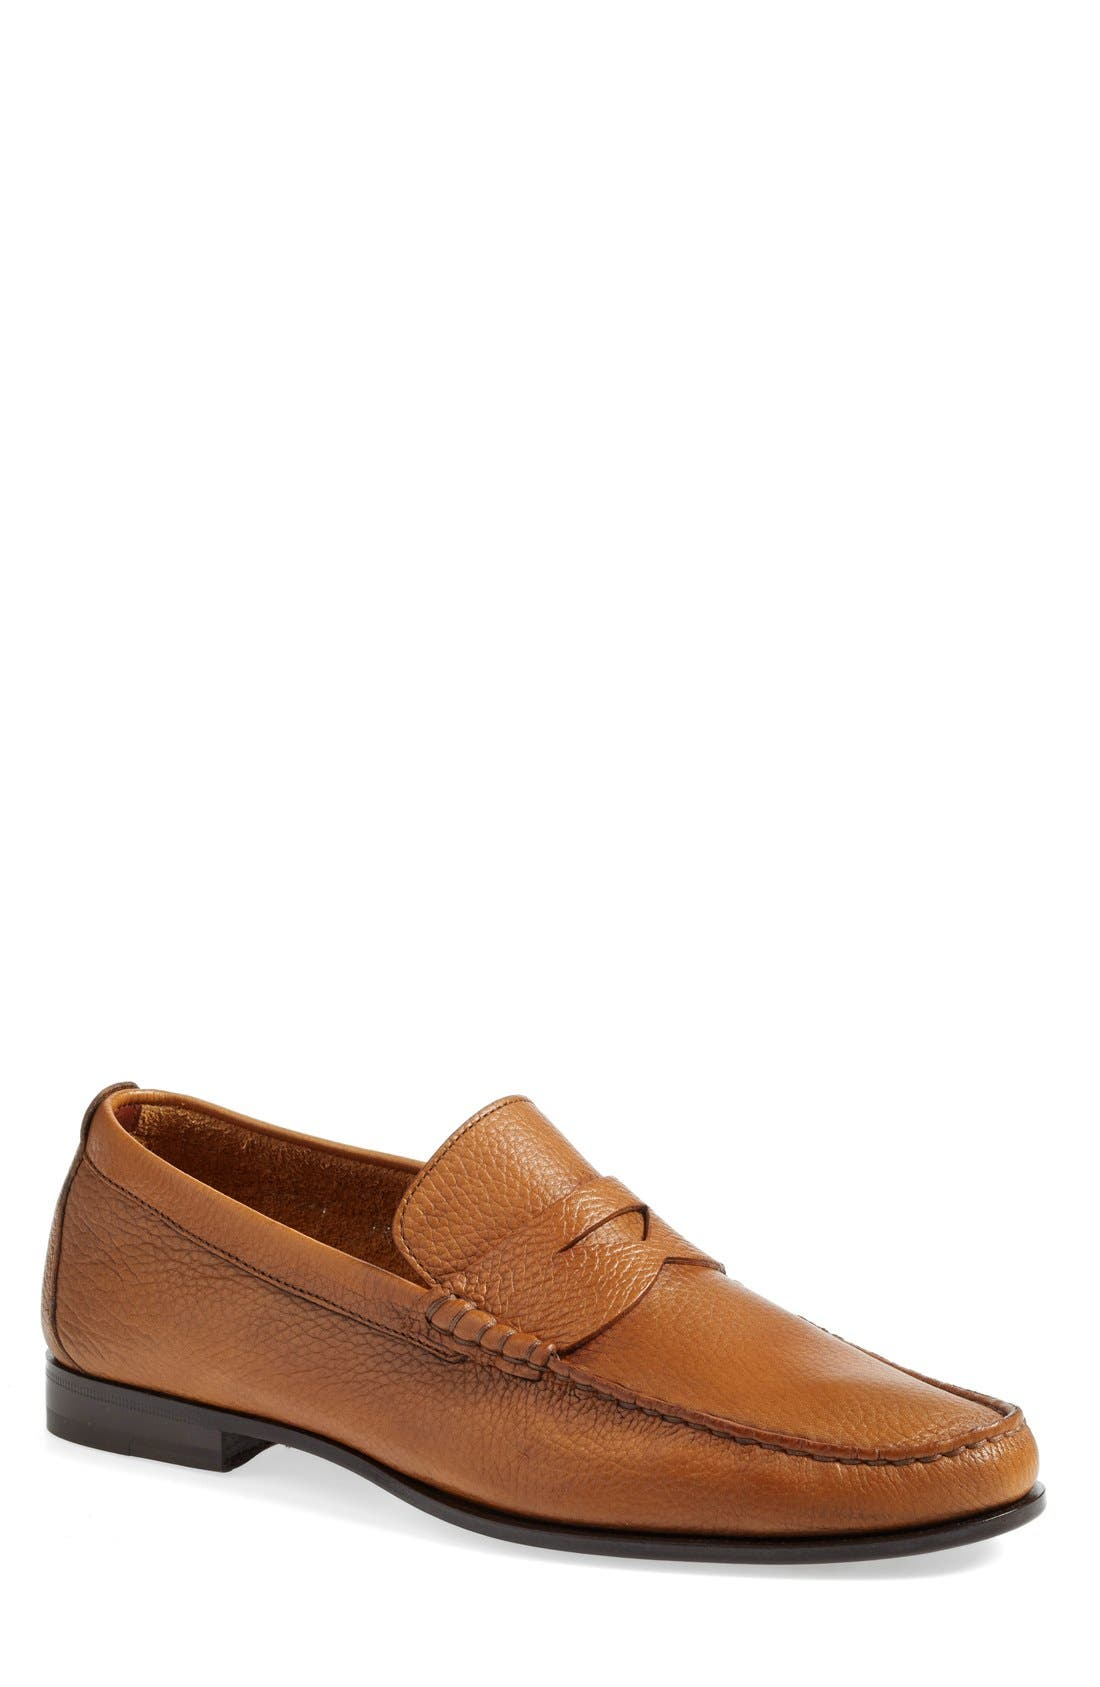 'Carmel' Penny Loafer,                             Main thumbnail 1, color,                             Tan Leather